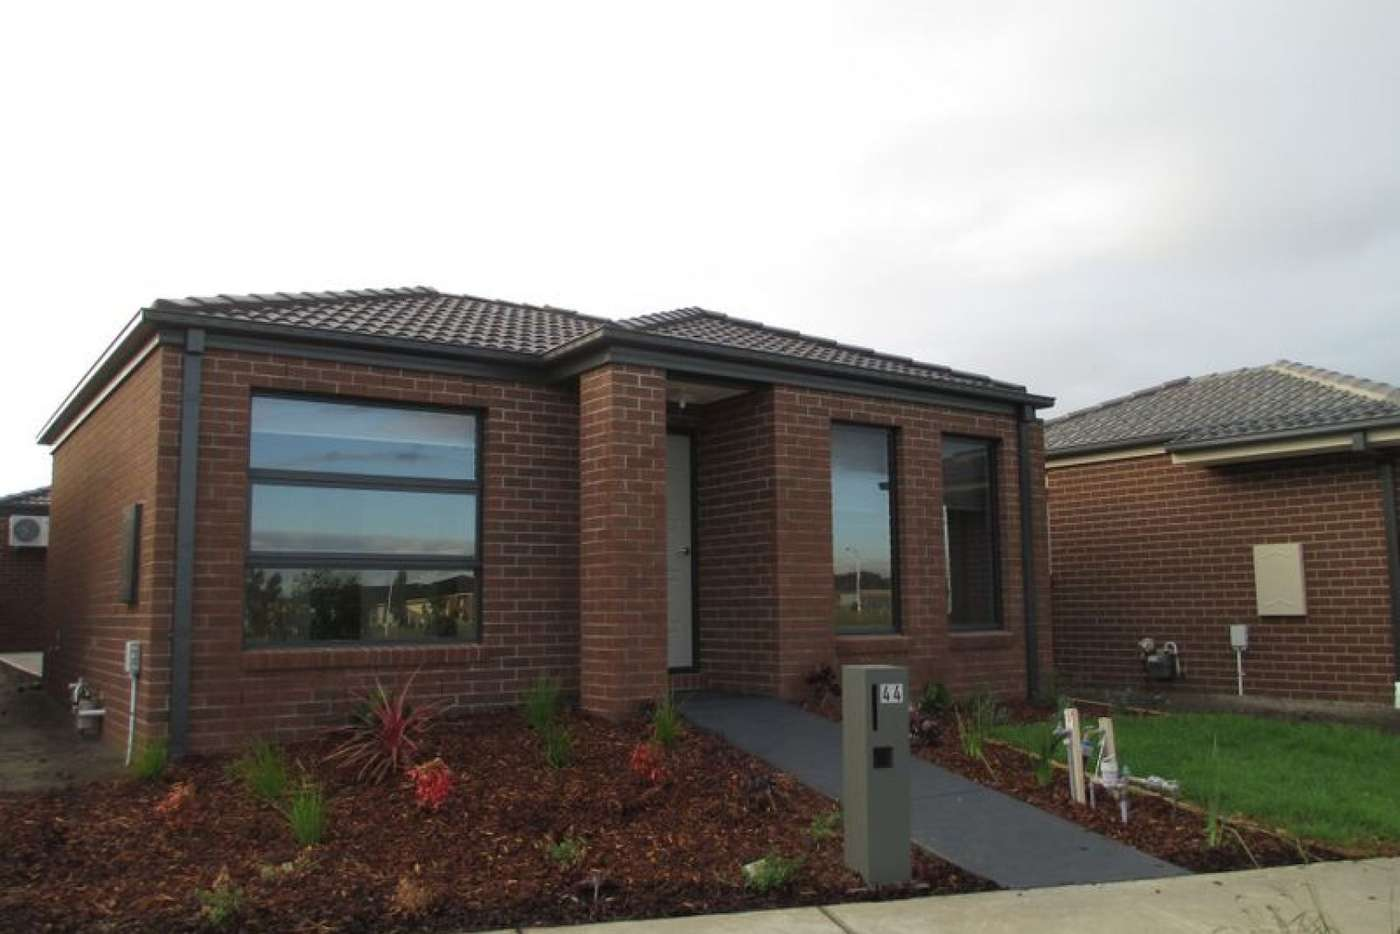 Main view of Homely house listing, 44 Parklink Drive, Cranbourne East VIC 3977